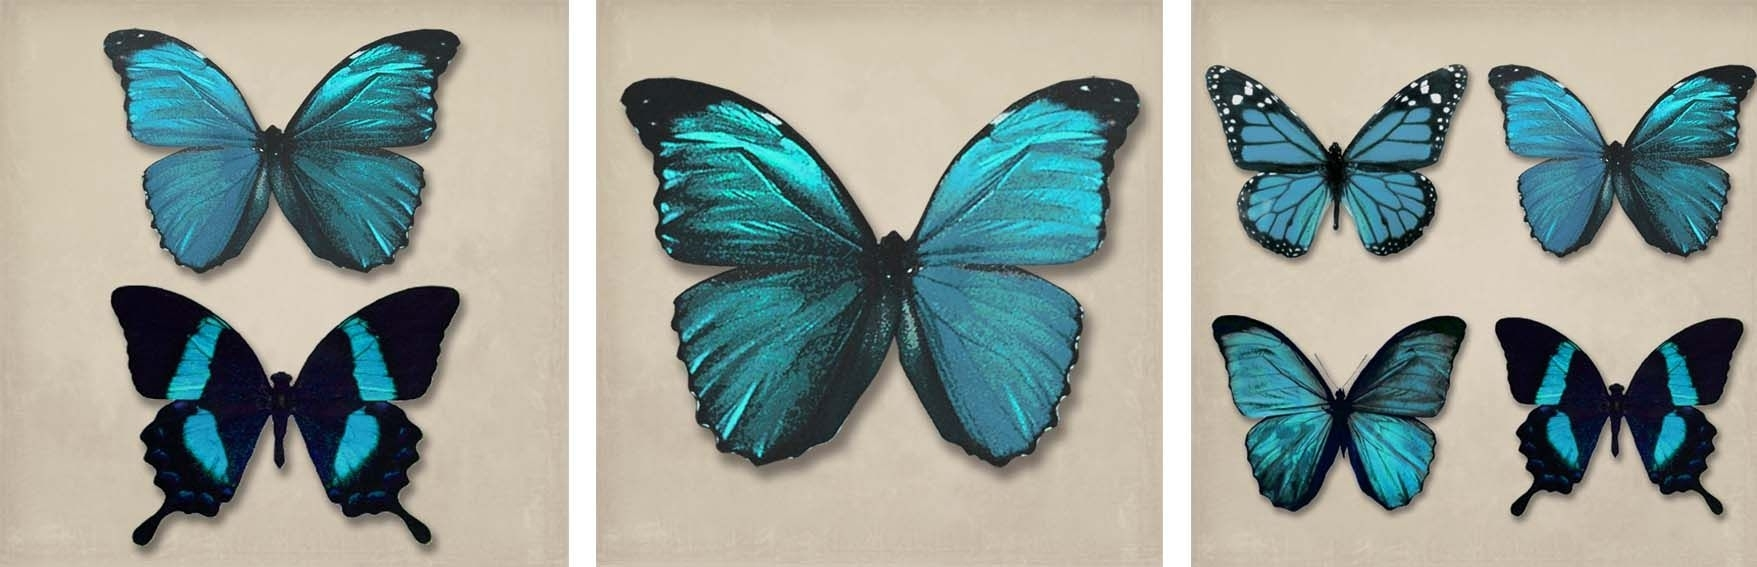 Teal Butterflies Set Of 3 Canvasesarthouse : Wallpaper Direct Throughout Most Up To Date Butterflies Canvas Wall Art (Gallery 5 of 15)